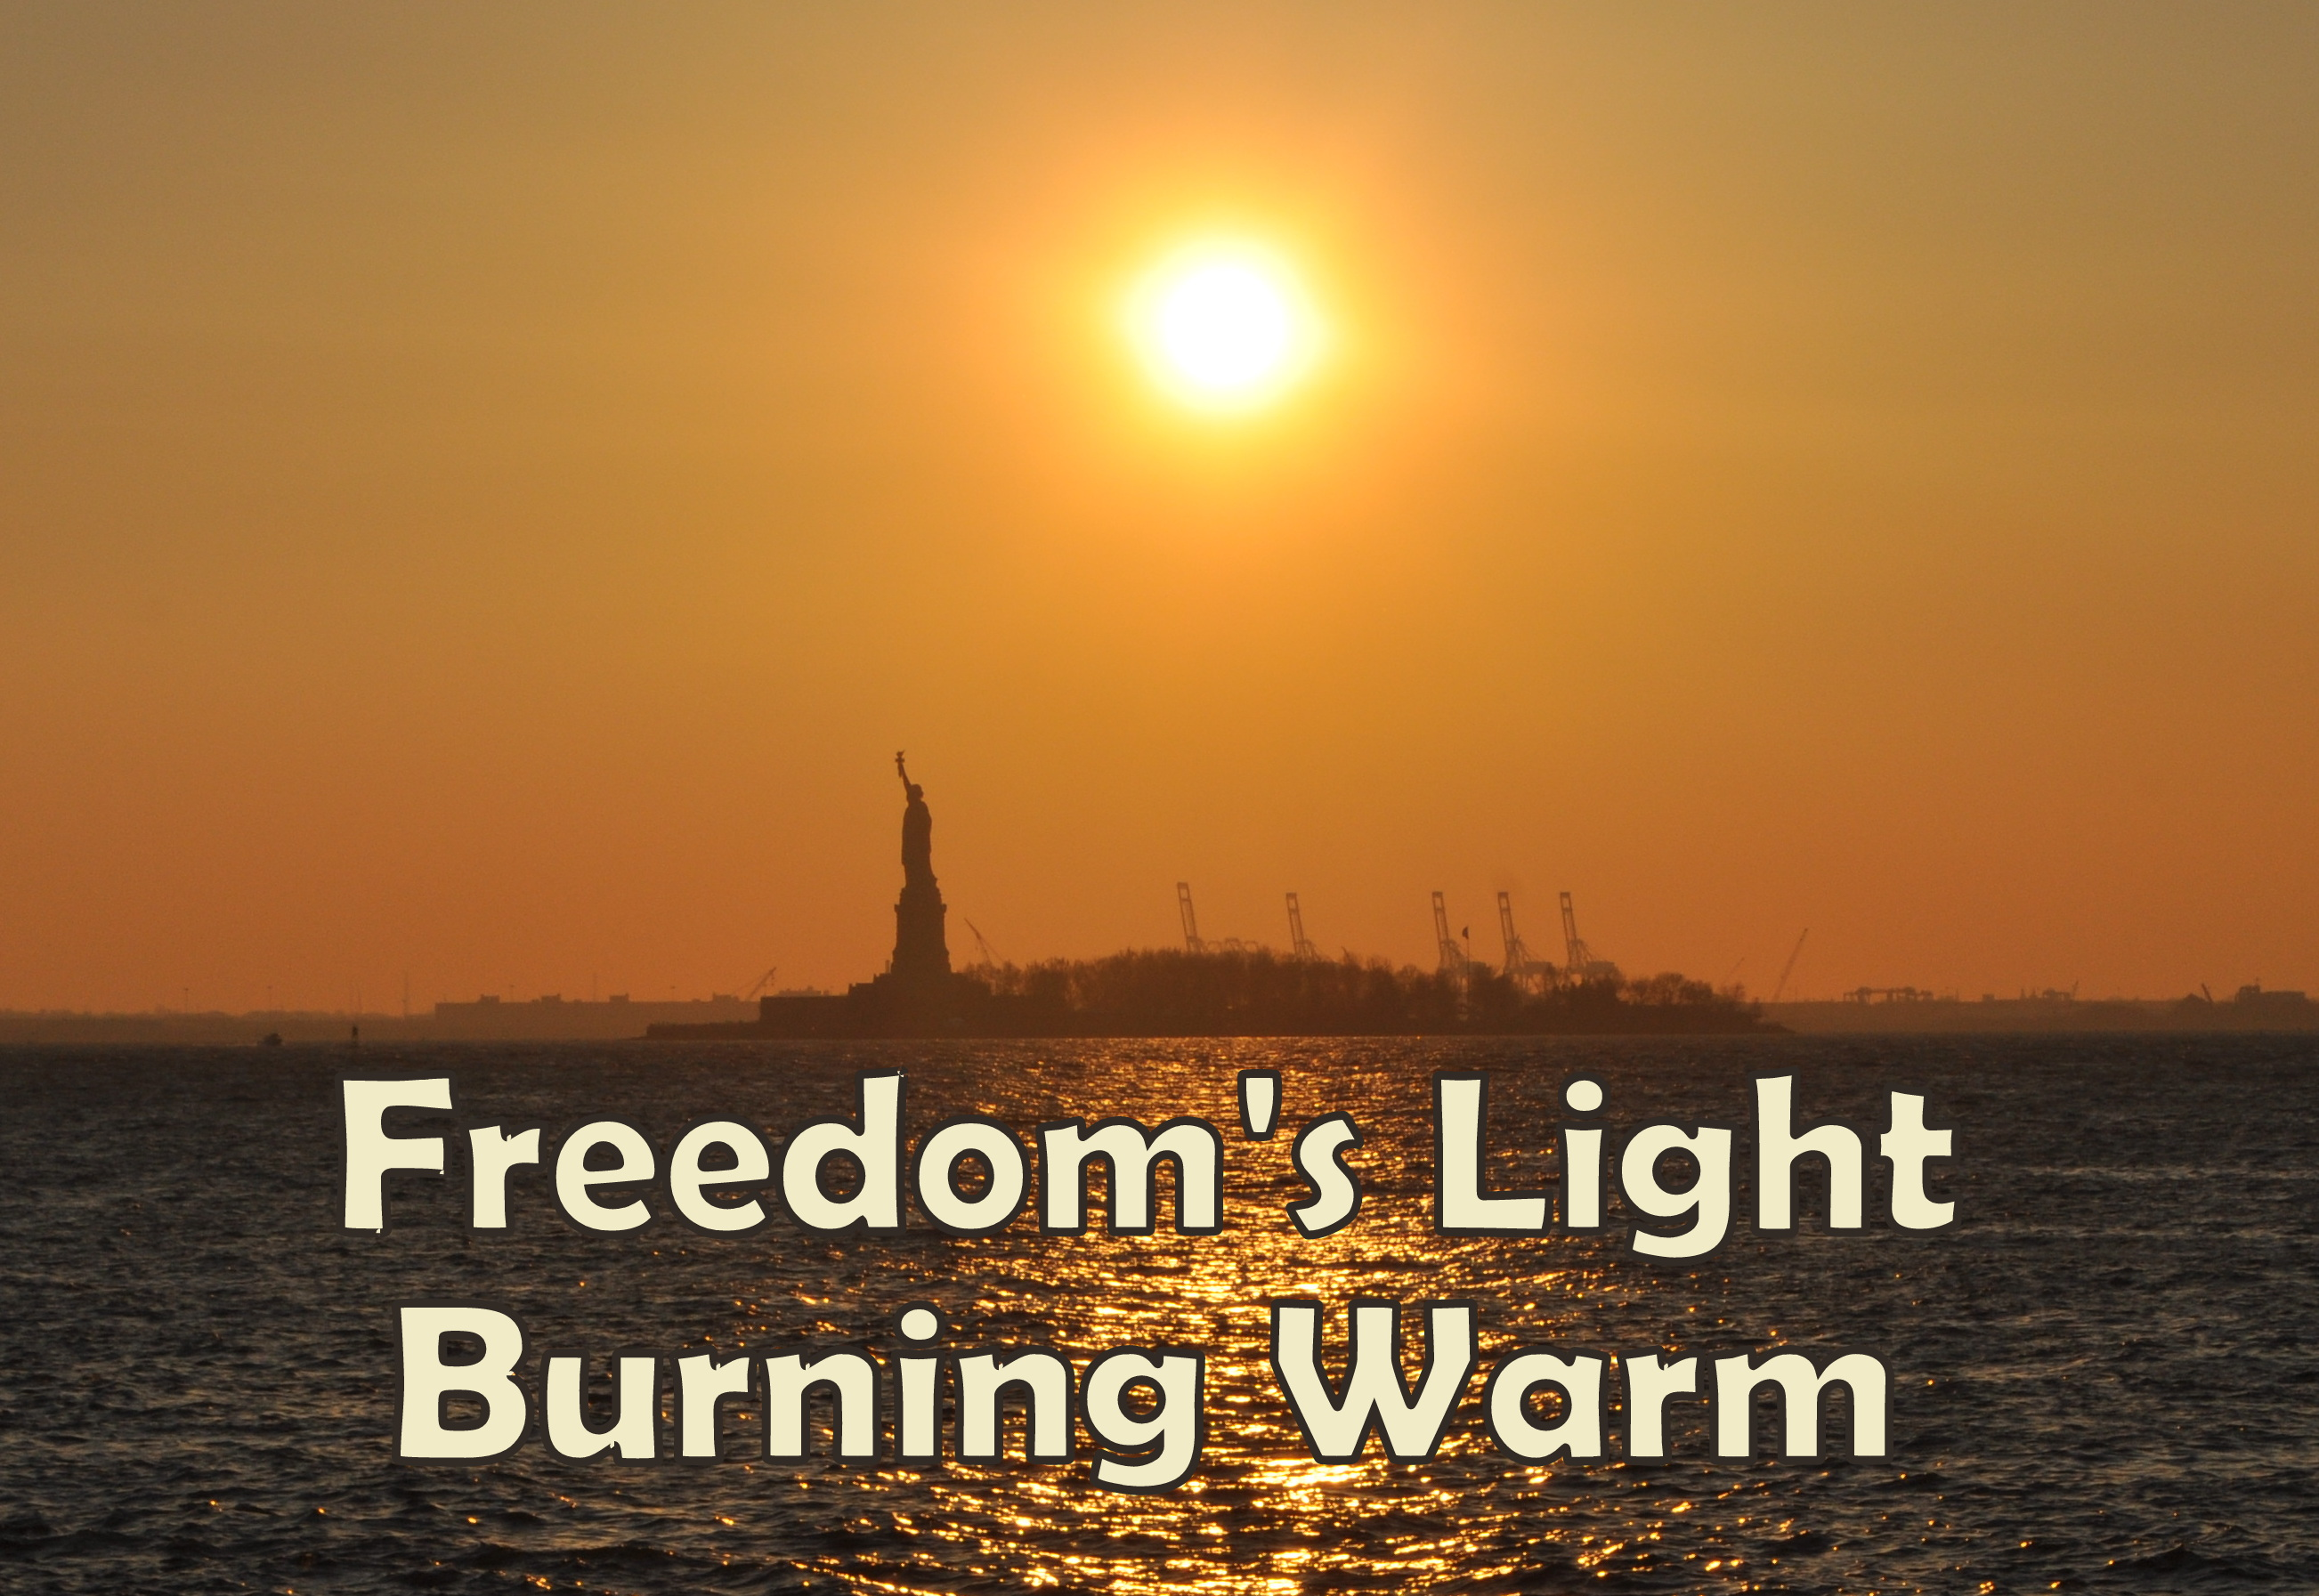 Freedom's Light Burning Warm